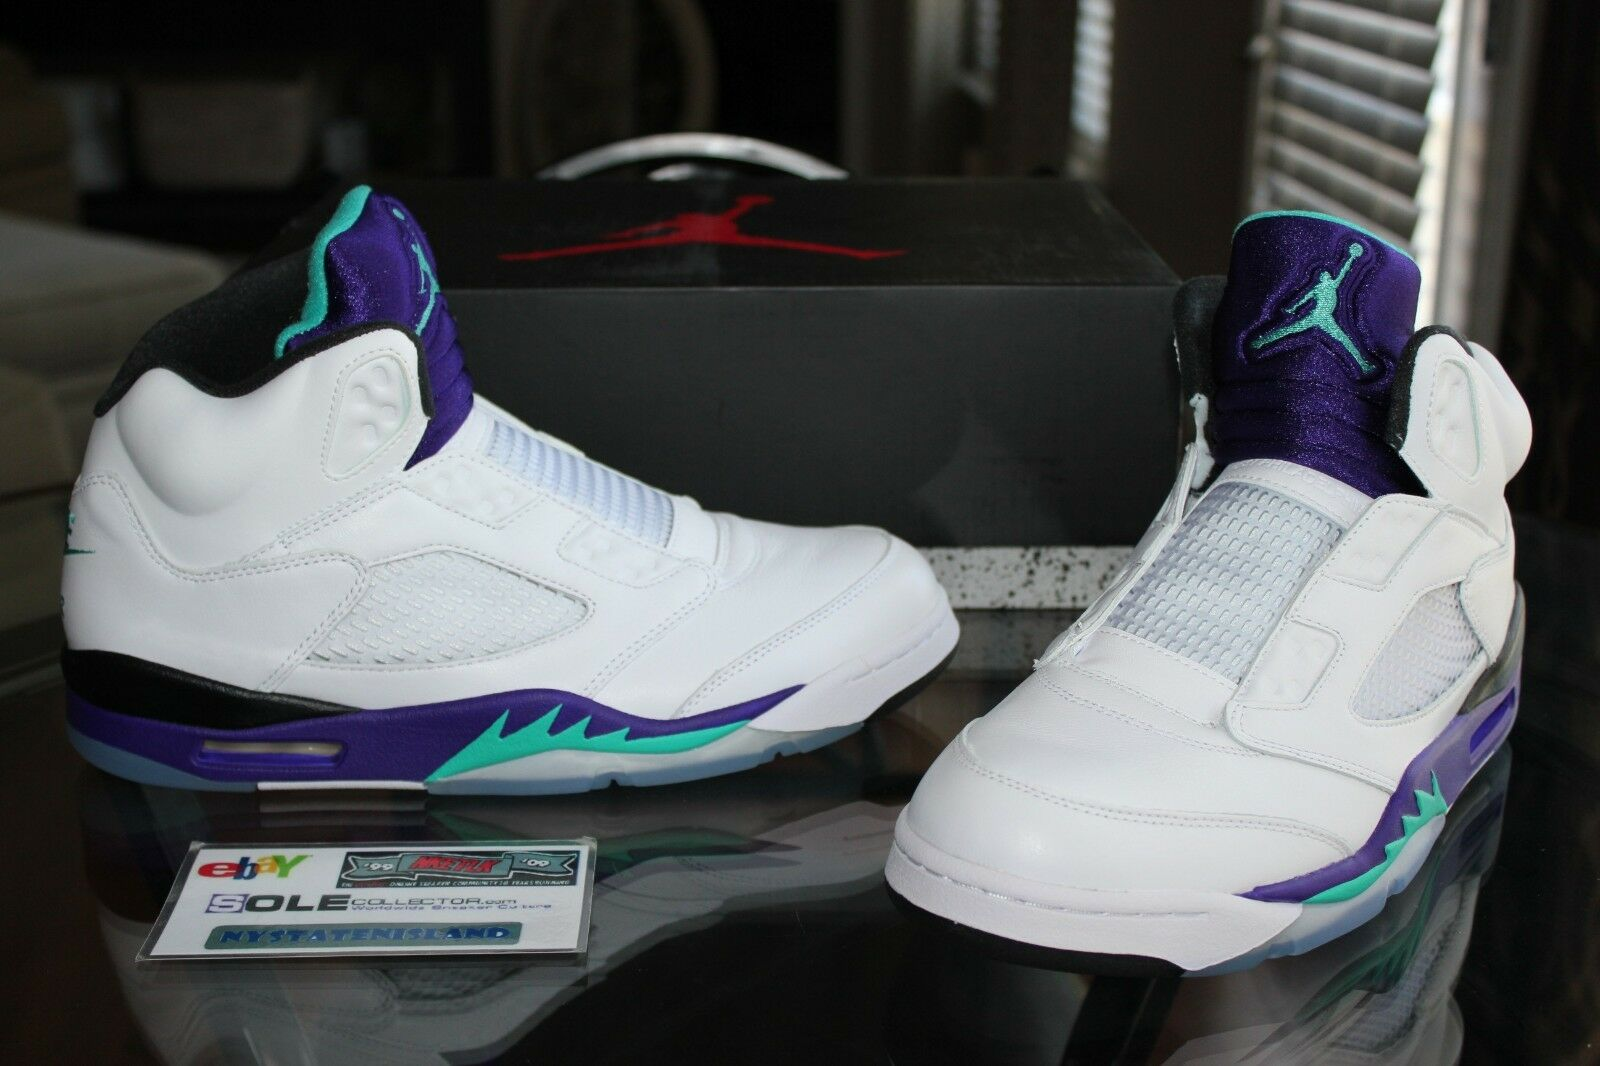 Deadstock Air Jordan Retro 5 V Grape Fresh Prince of Bel-Air Sizes 10, 10.5 & 11